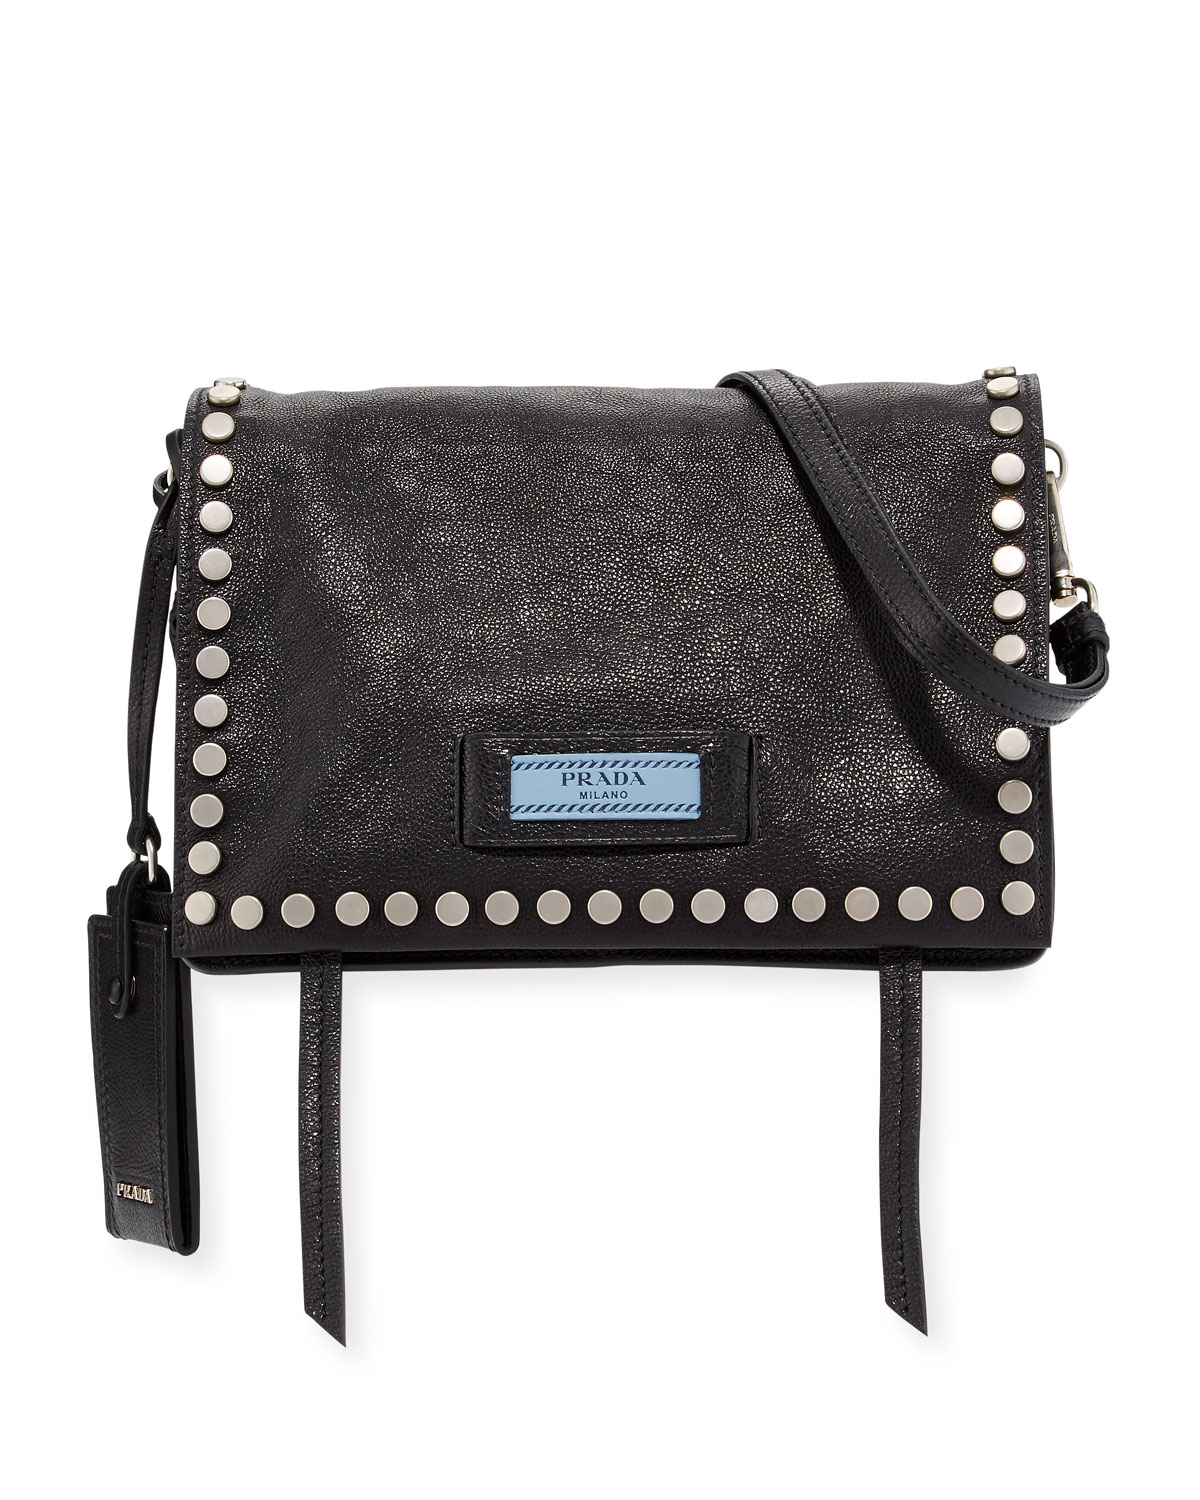 d0ed8483eea2 Prada Small Studded Glace Calf Etiquette Shoulder Bag